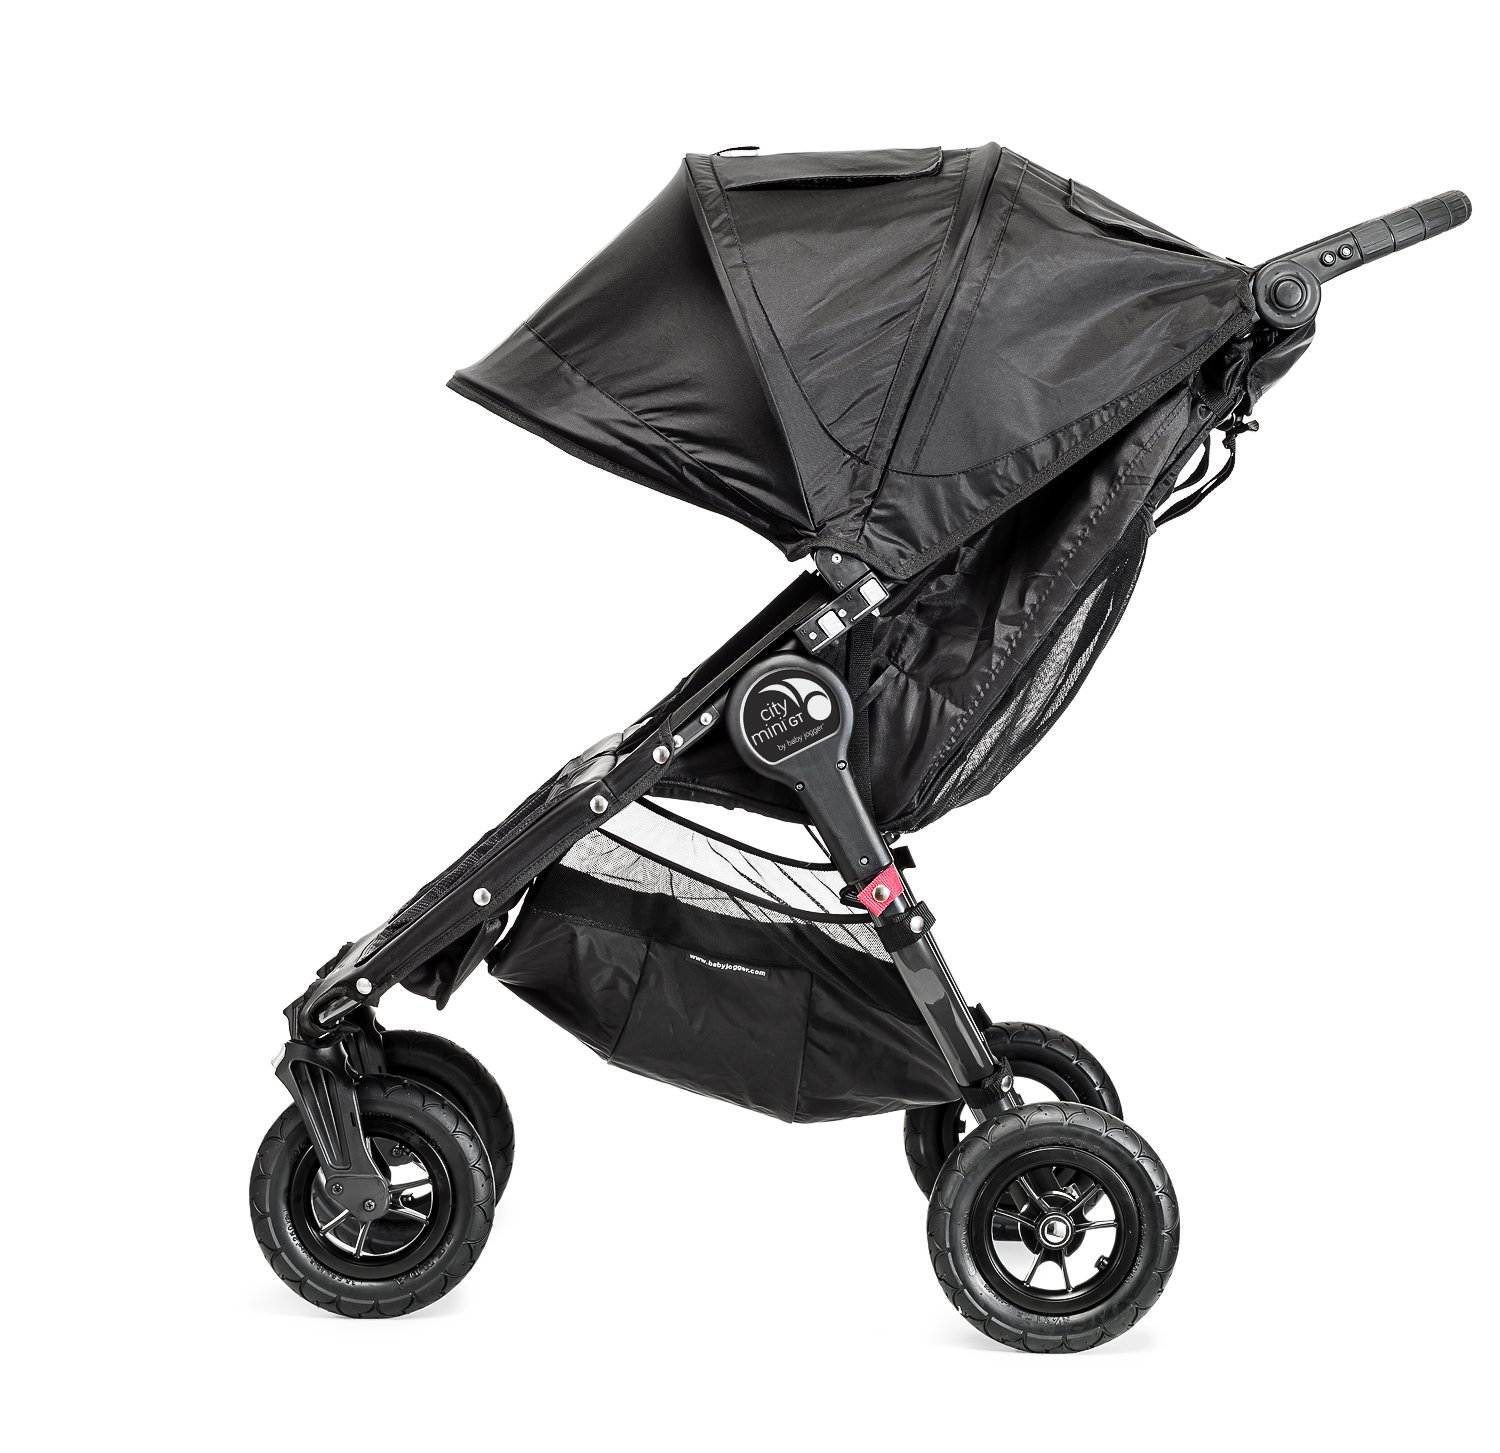 Baby Jogger City Mini GT Double Stroller Black  Taking a little detour is fun, the City Mini GT Double offers all-terrain wheels that let you make your own rules; the all-terrain wheels and front wheel suspension work in unison to give you full control on where and how you go while keeping your little one comfortable Lift the straps and the City Mini GT Double folds itself: Simply and compactly, it really is as easy as it sounds; the auto-lock will lock the pushchair for transportation or storage An adjustable handlebar can accommodate different heights and a hand-operated parking brake keeps all the controls within reach 12